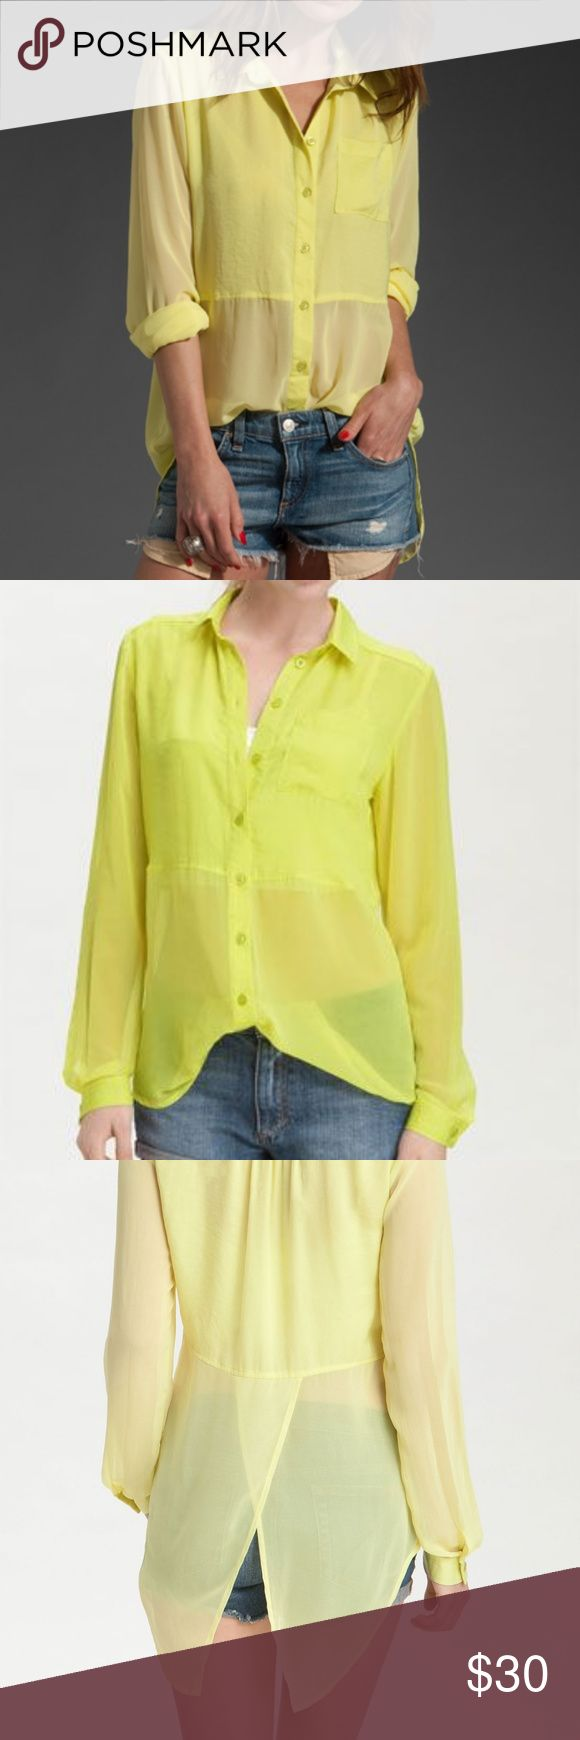 """Free People Split Panel Free People 'Best of Both Worlds' Sheer Panel Shirt. Sold out online. Size Large. Slightly neon yellow. Different colors in different light.   A solid-satin cropped body and collar define a chic, oversized button-front shirt. Sheer sleeves and panels to the hem add a chic touch to the on-trend yet easy-to-wear style.  Single-button cuffs. Approx. length from shoulder: front 30""""; back 35"""". Polyester; machine wash. Free People Tops Button Down Shirts"""